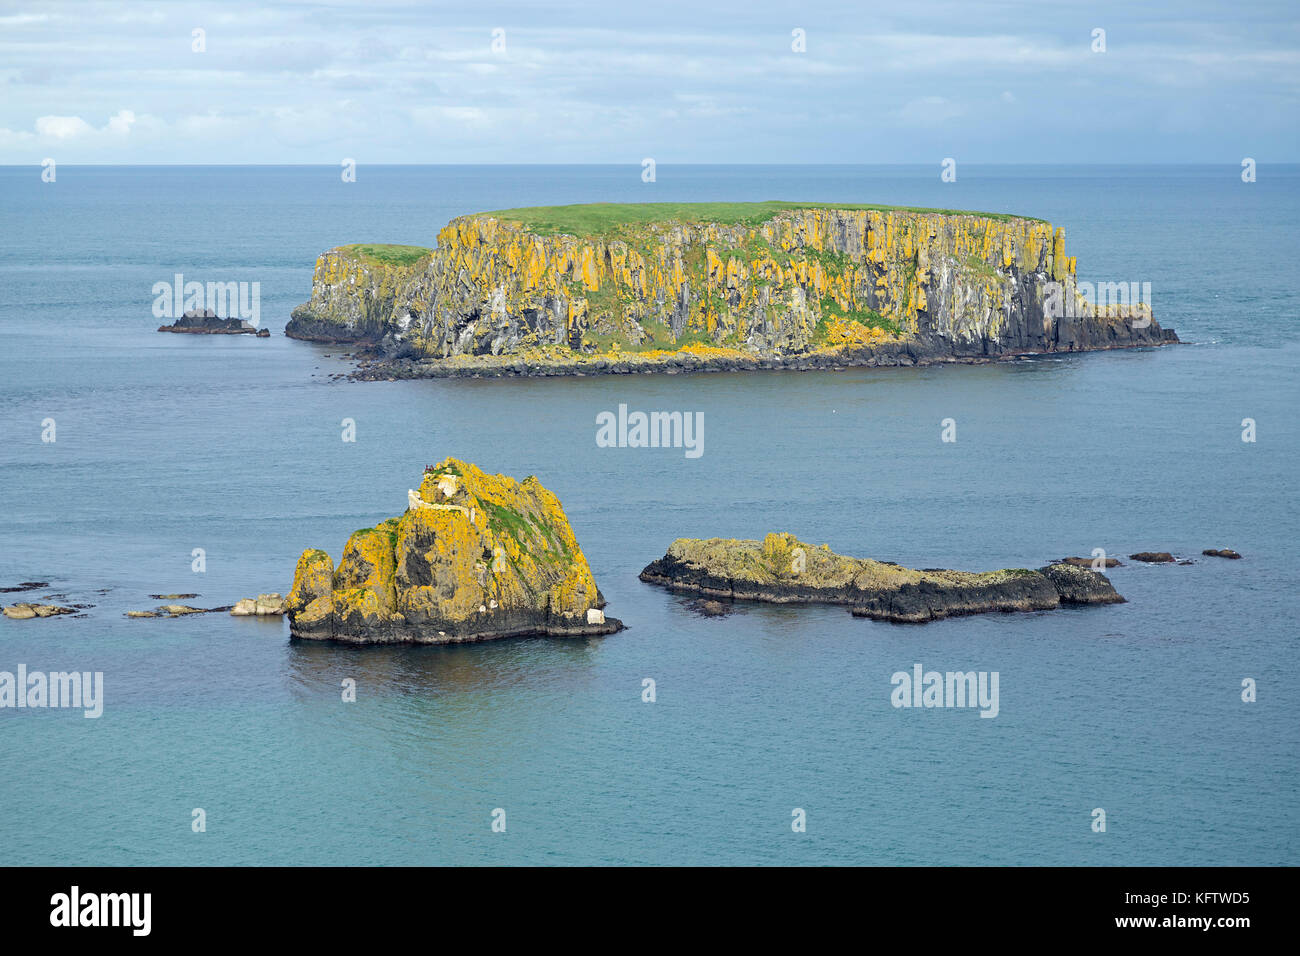 Sheep Island, Carrick-a-Rede Rope Bridge, Ballintoy, Co. Antrim, Northern Ireland - Stock Image